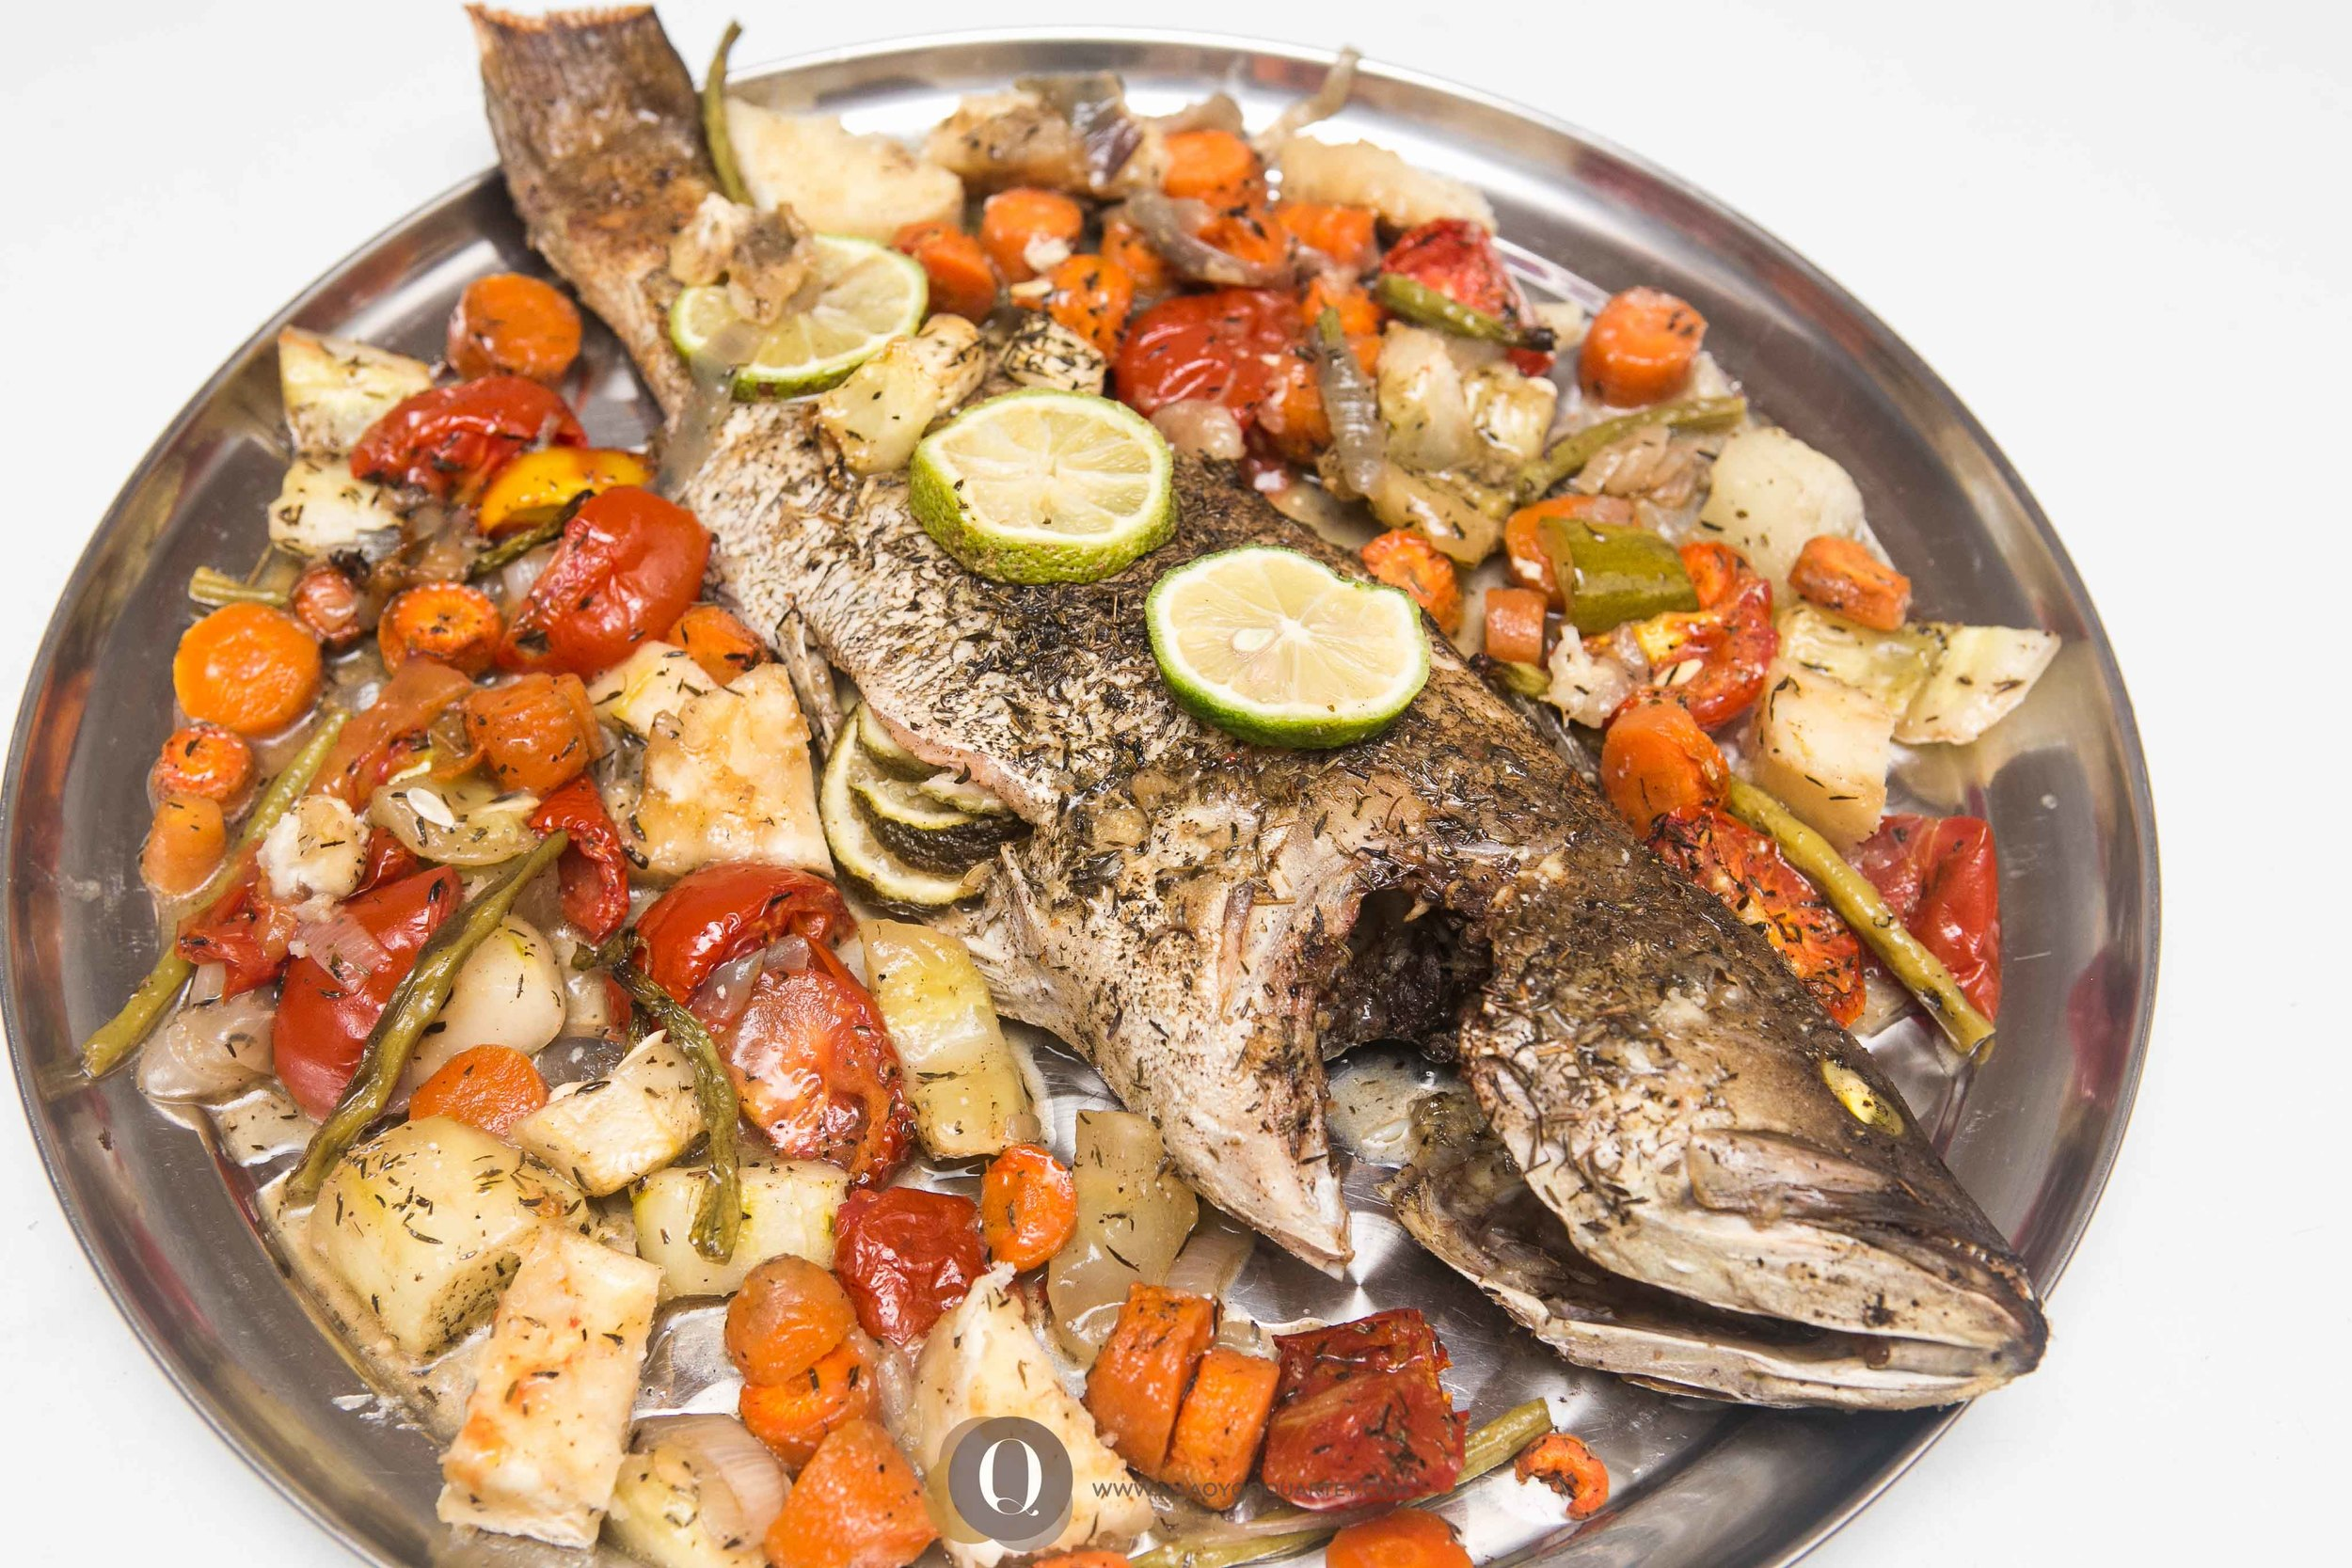 Baked grouper with baked vegetables